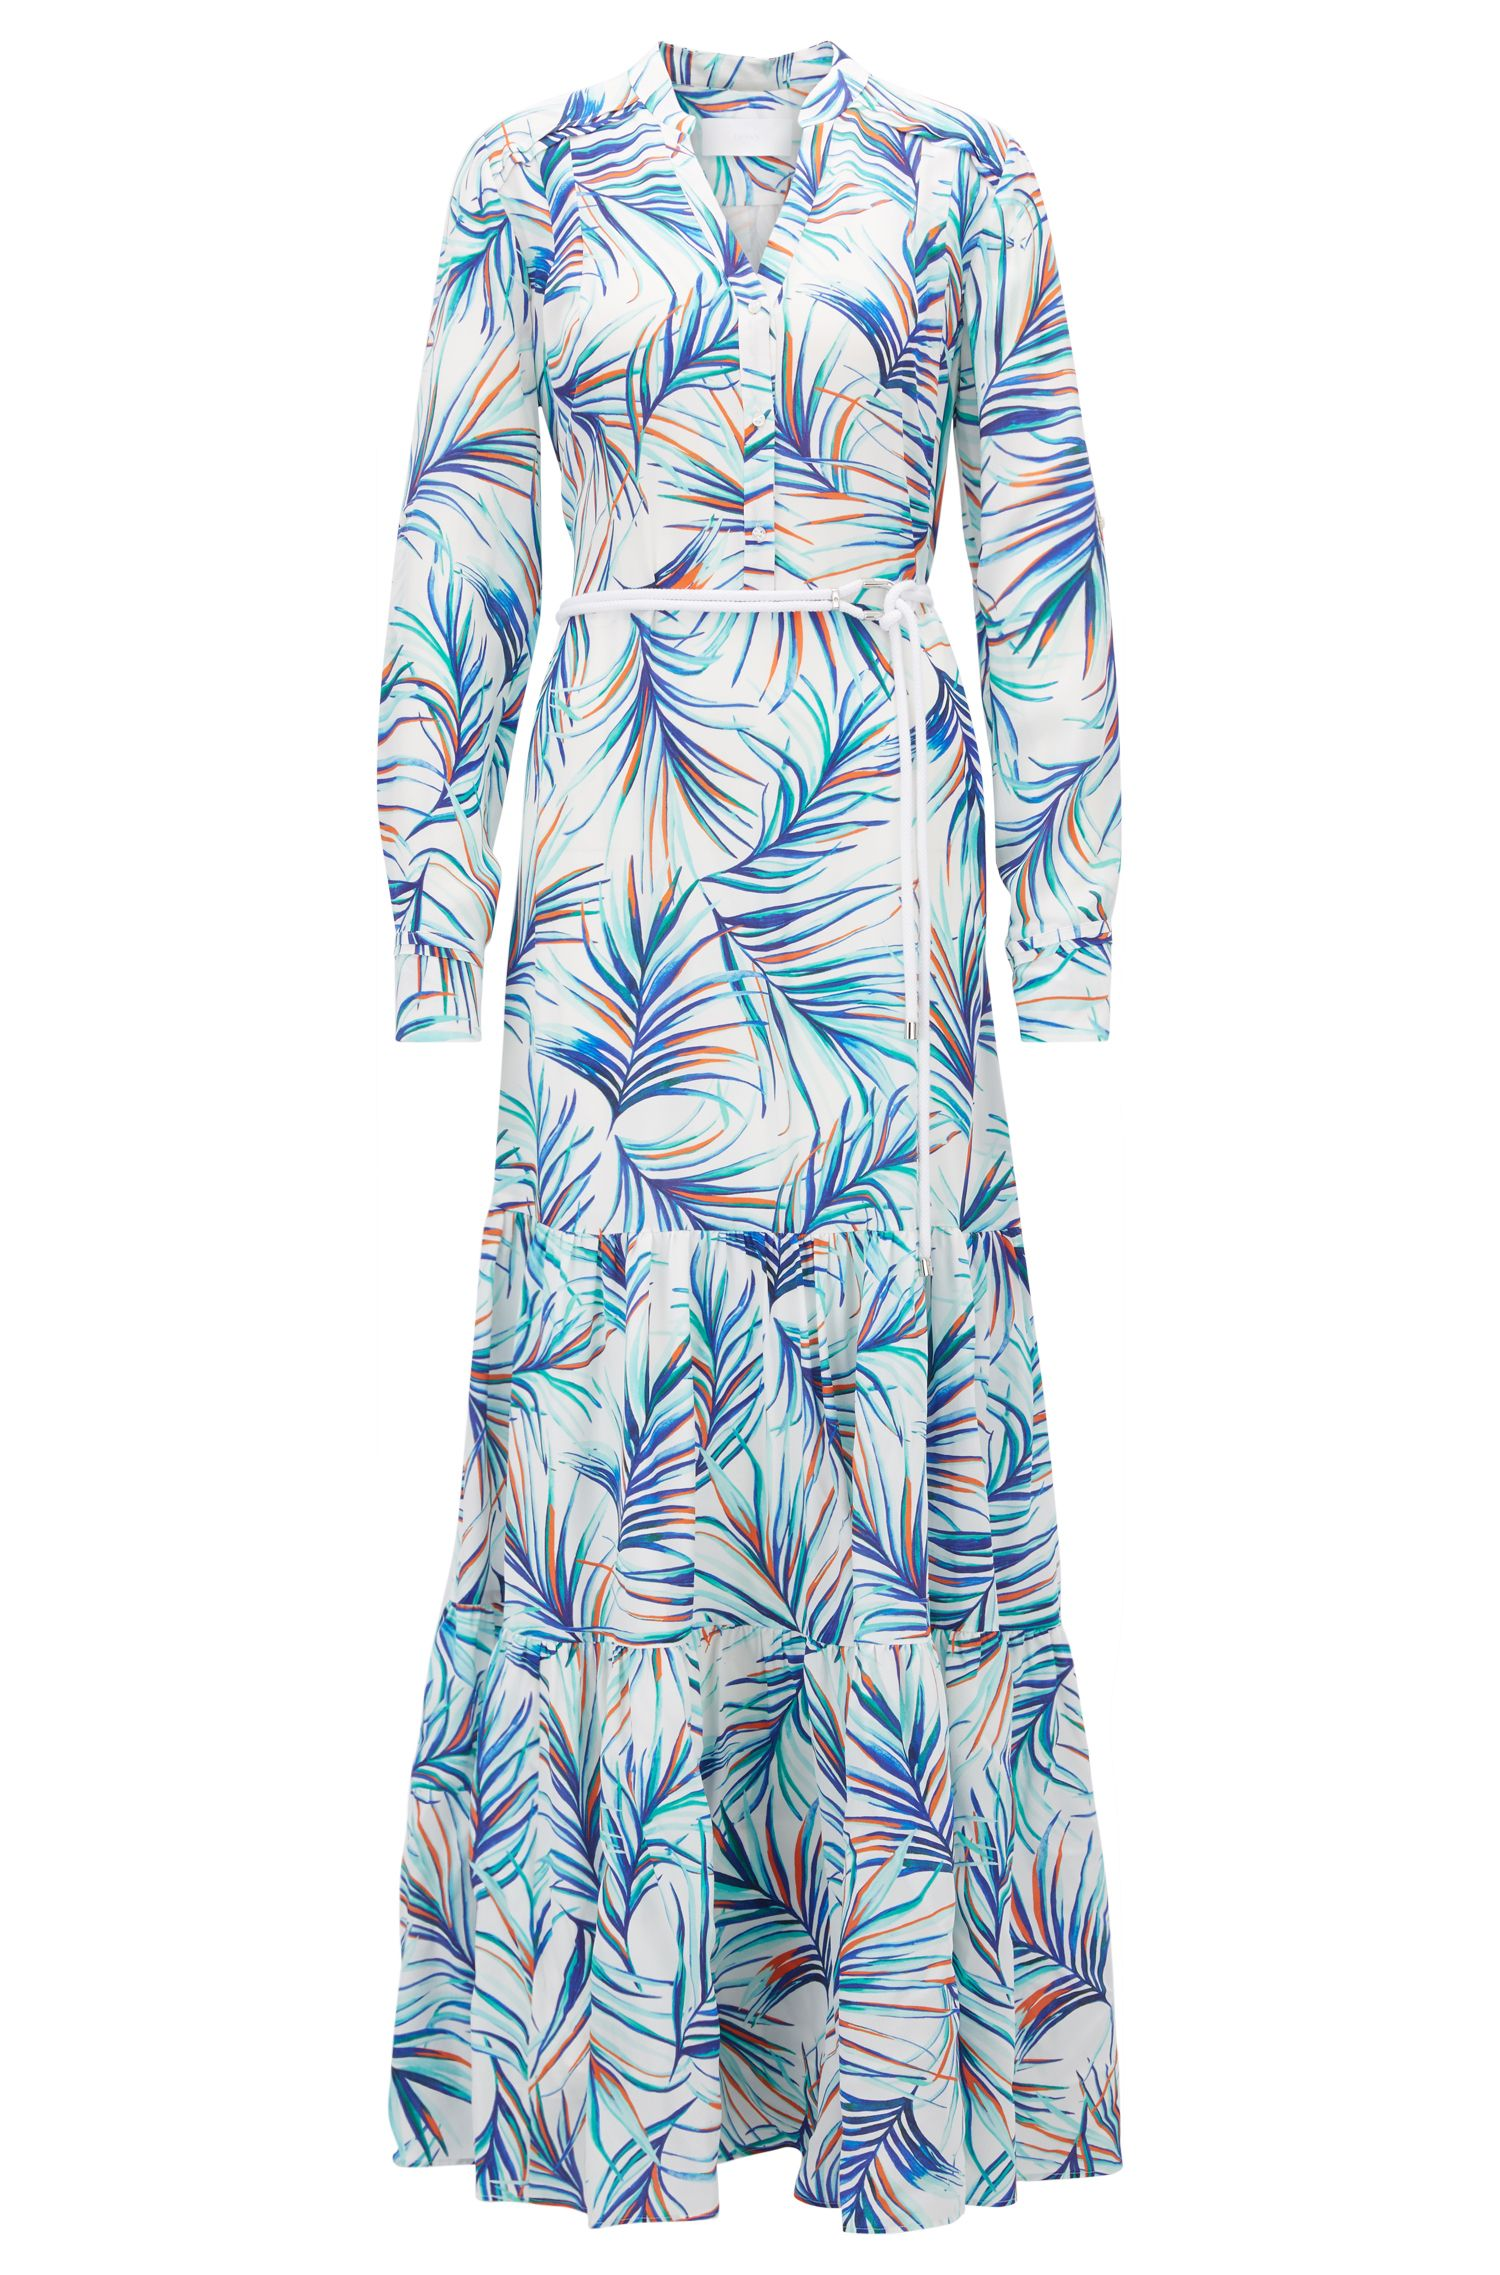 Long-sleeved silk maxi dress in palm-leaf print, Patterned